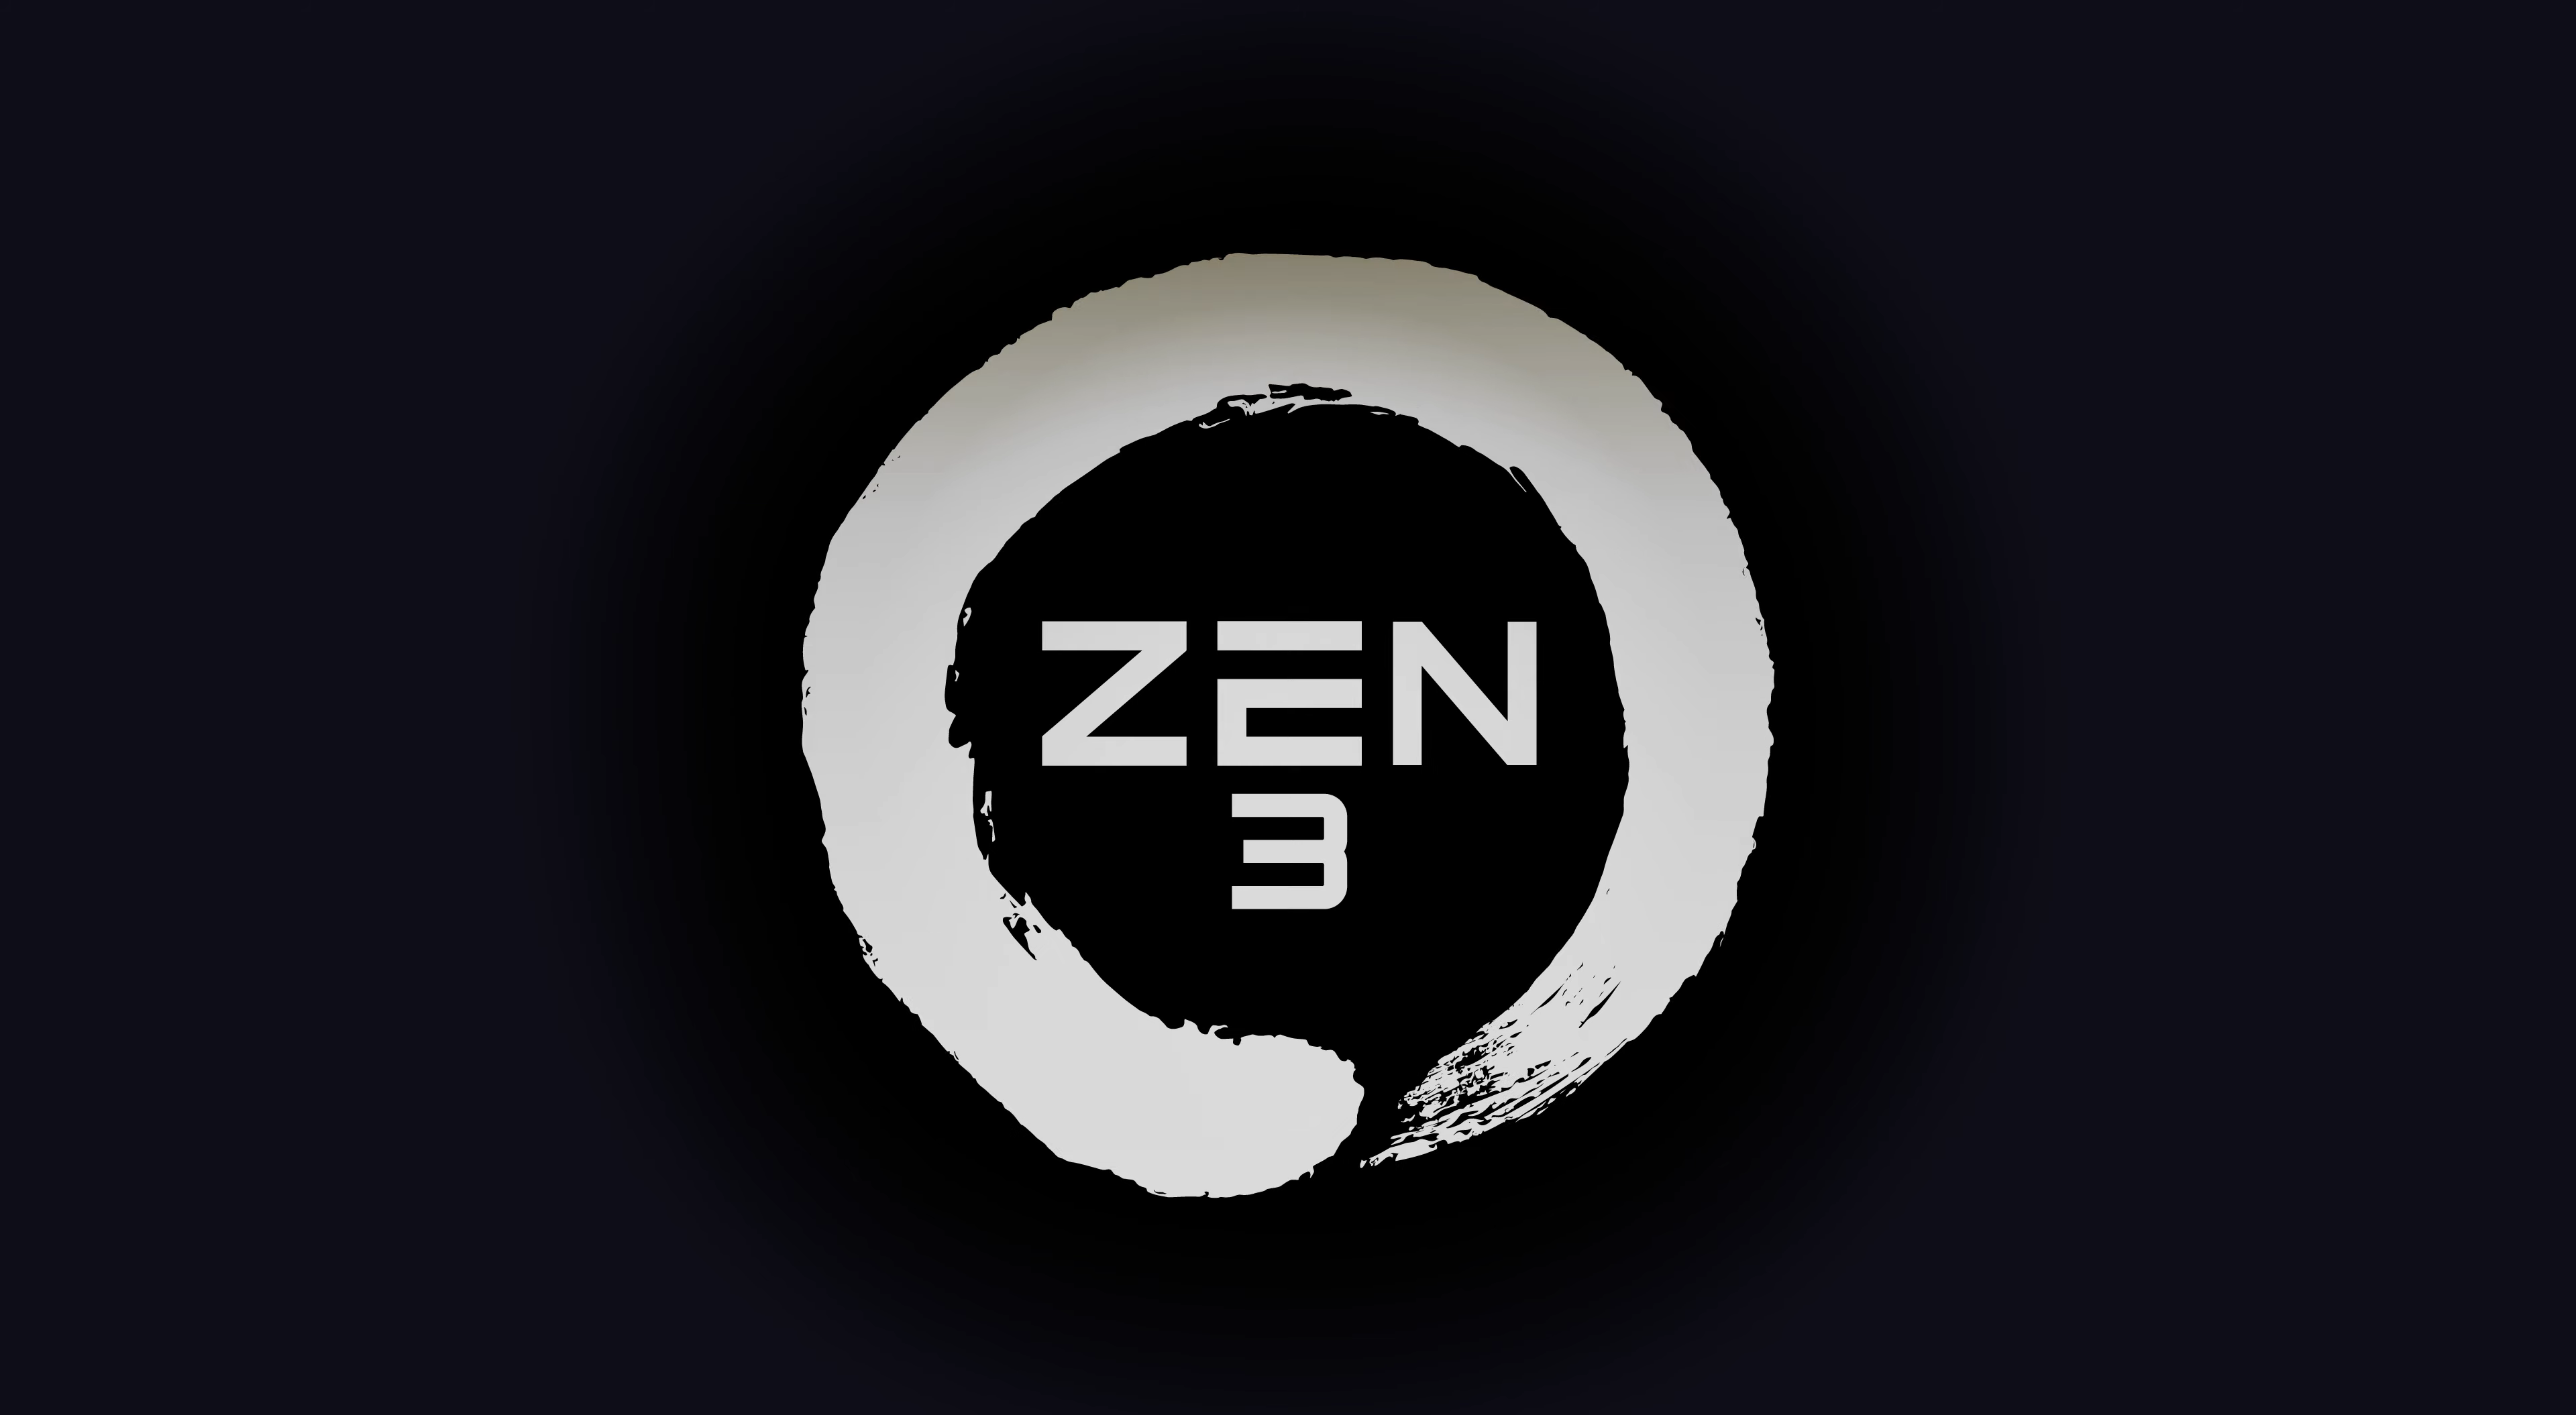 Amd Ryzen 9 4950x 5950x With 16 Zen 3 Cores 4 8 Ghz Clocks Spotted Faster Than The Ryzen 9 3950x In Es State